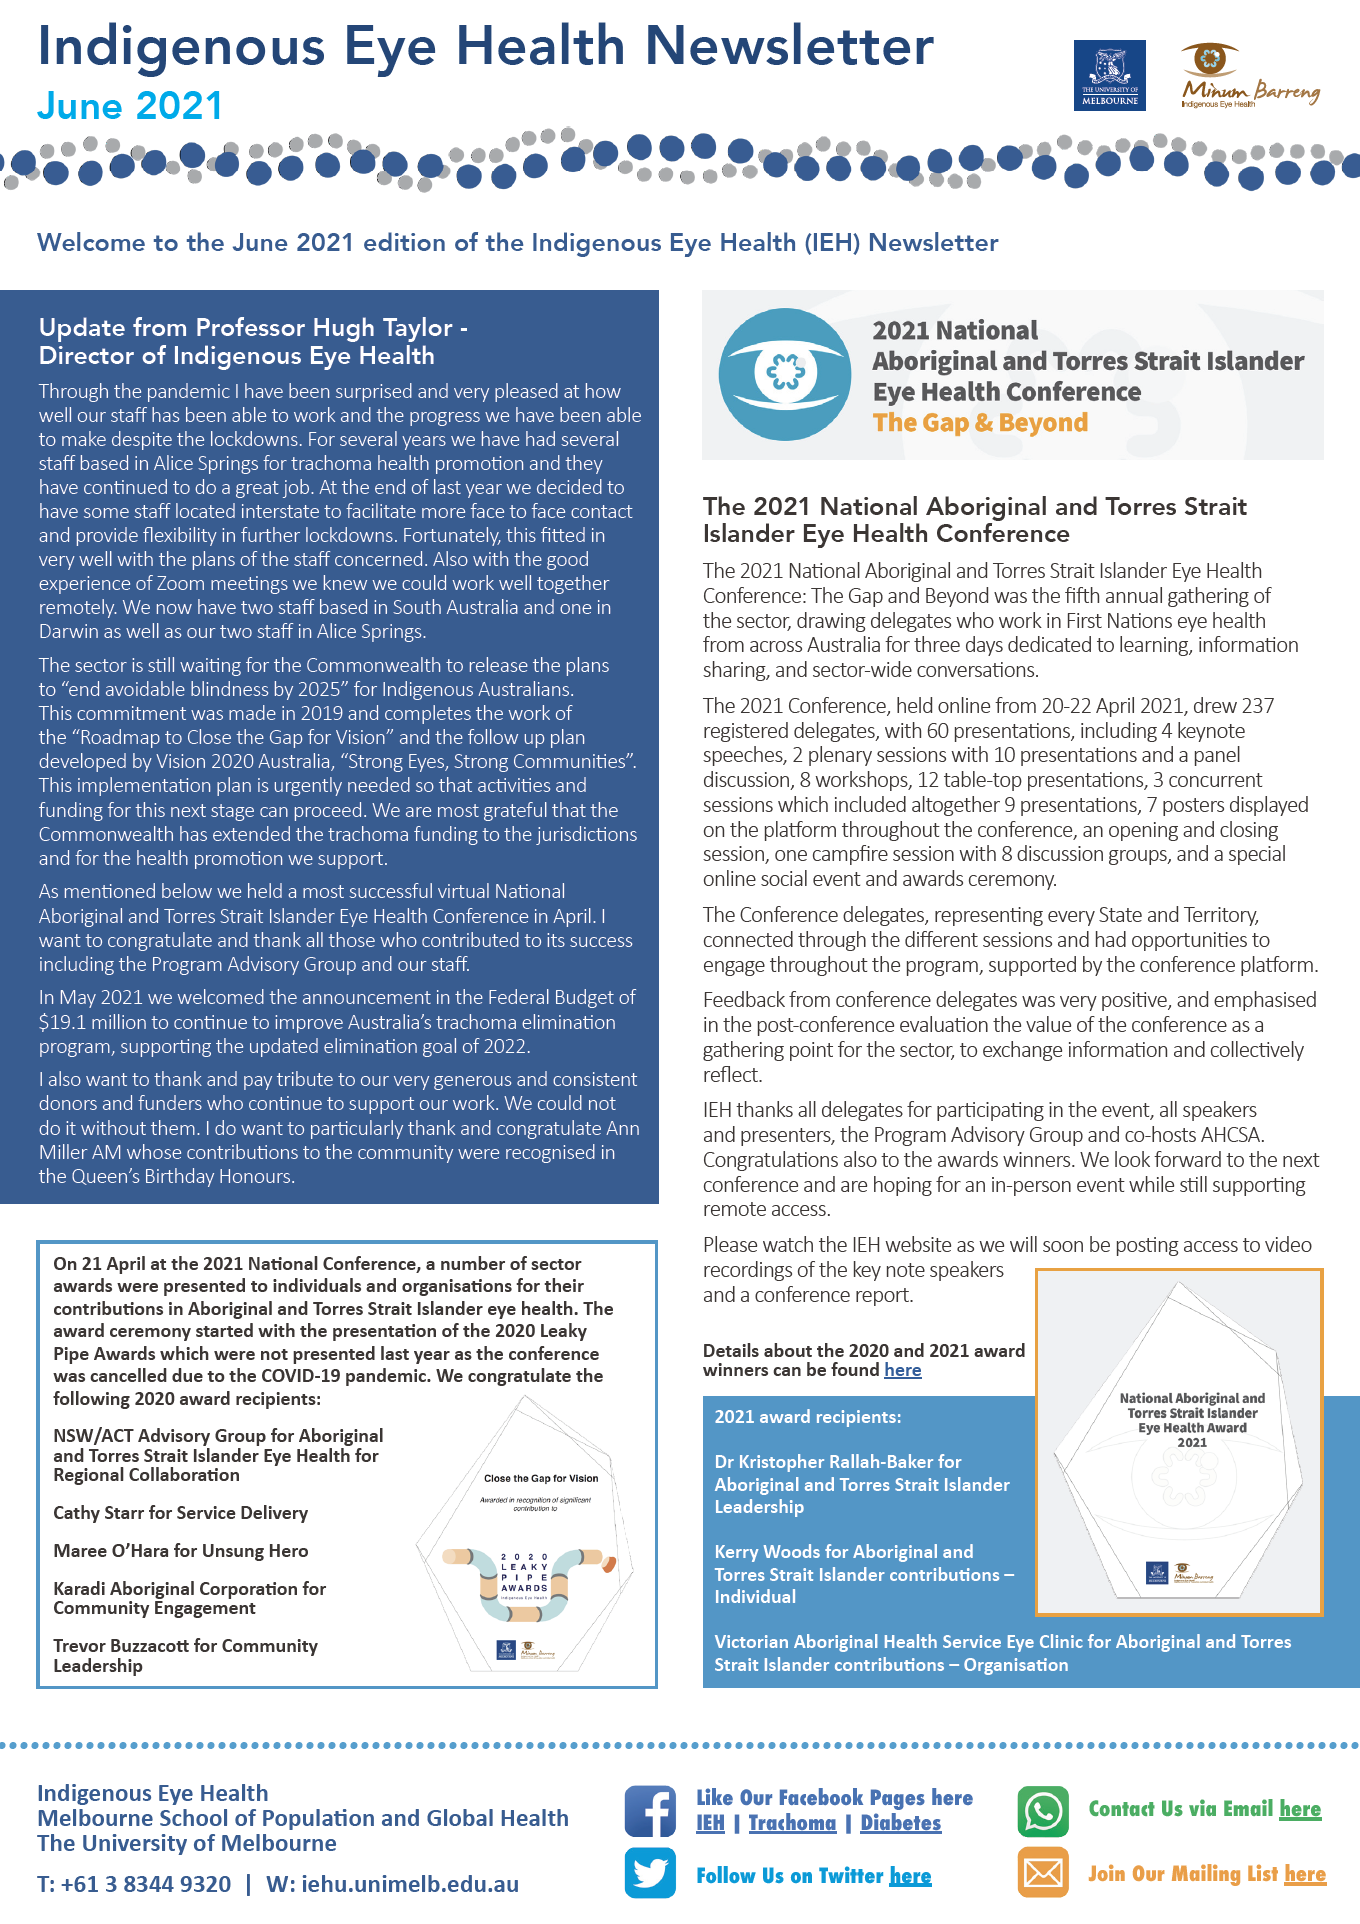 IEH june 2021 newsletter cover